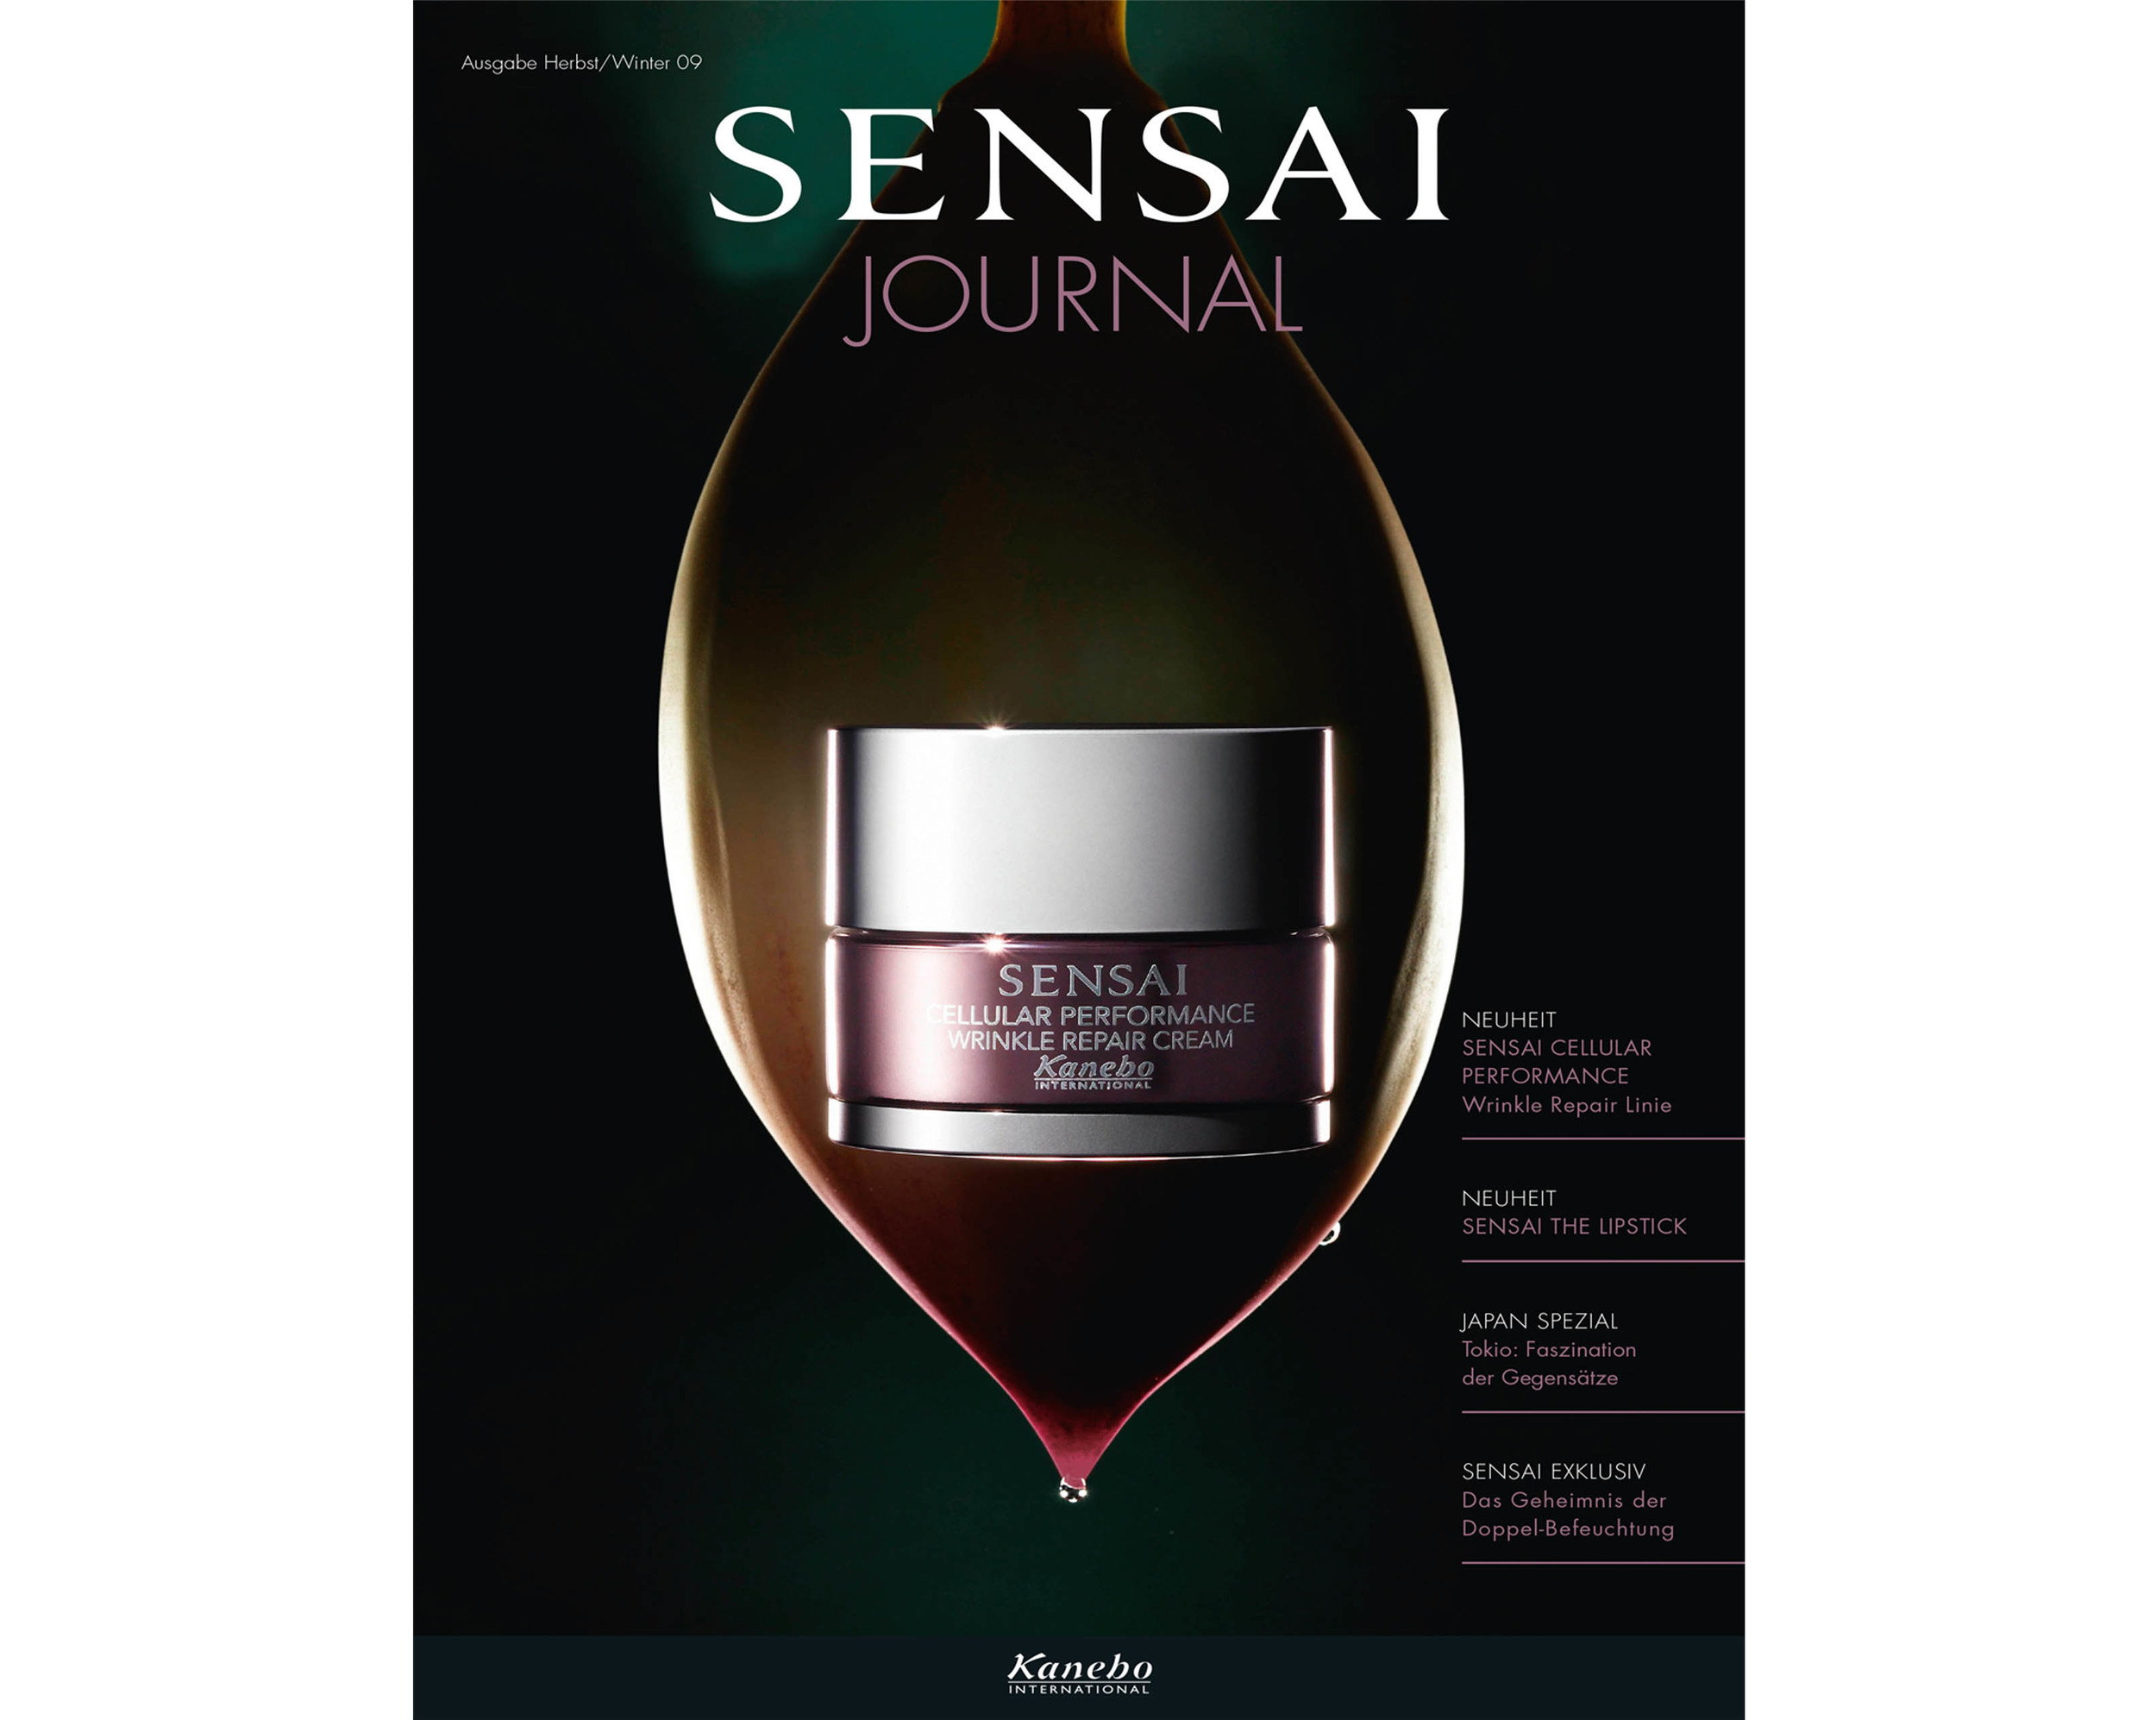 Sensai_journal_cover_01.jpg